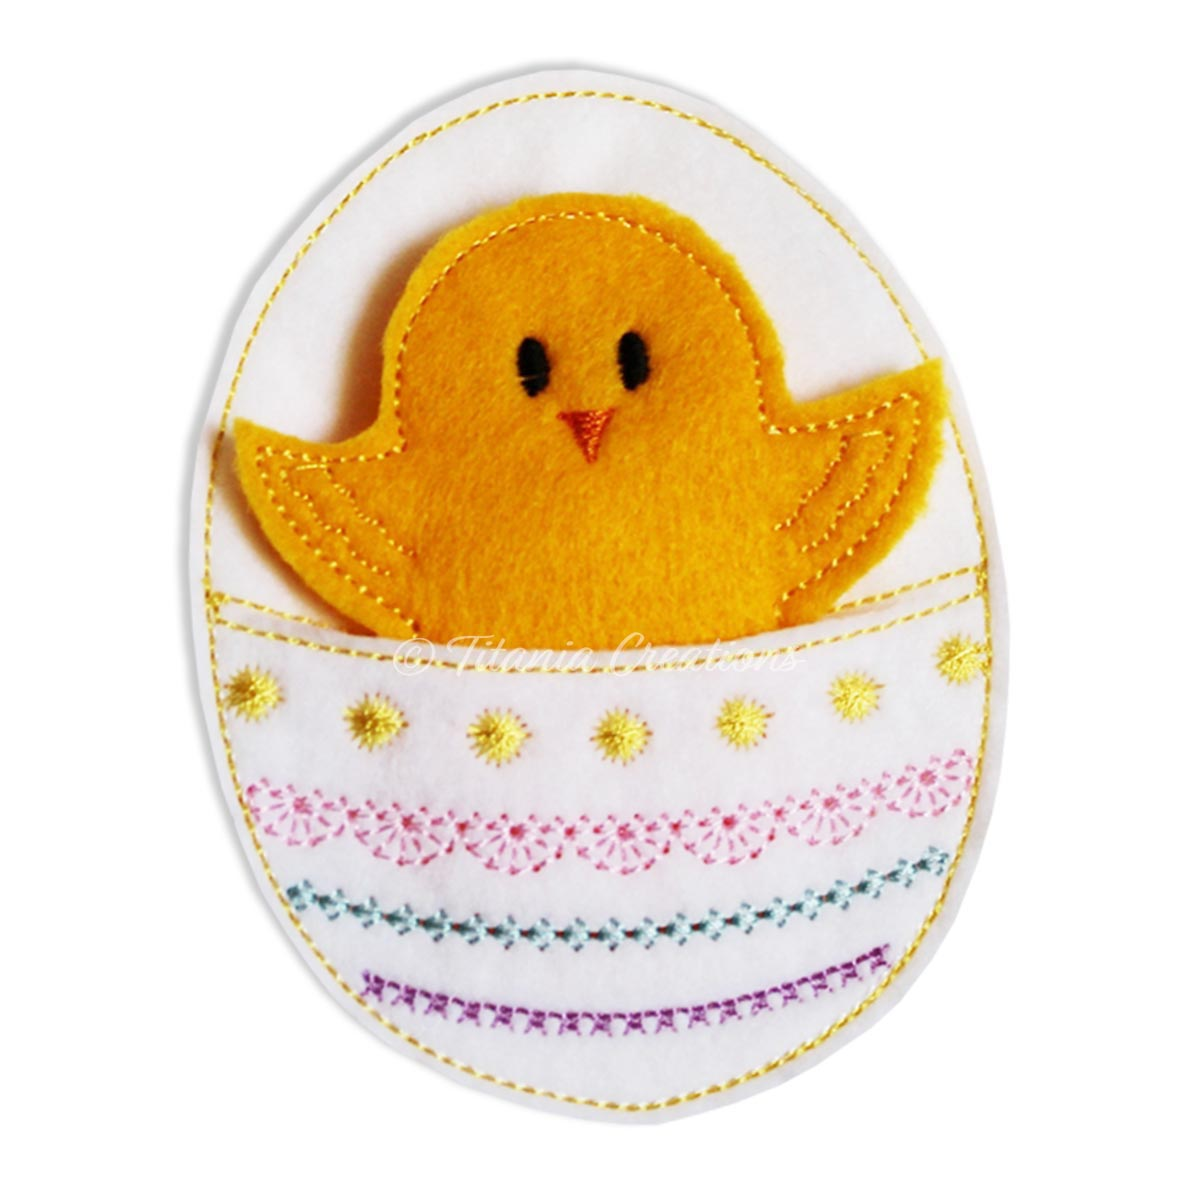 ITH Easter Egg Chick Treat Bag 4x4